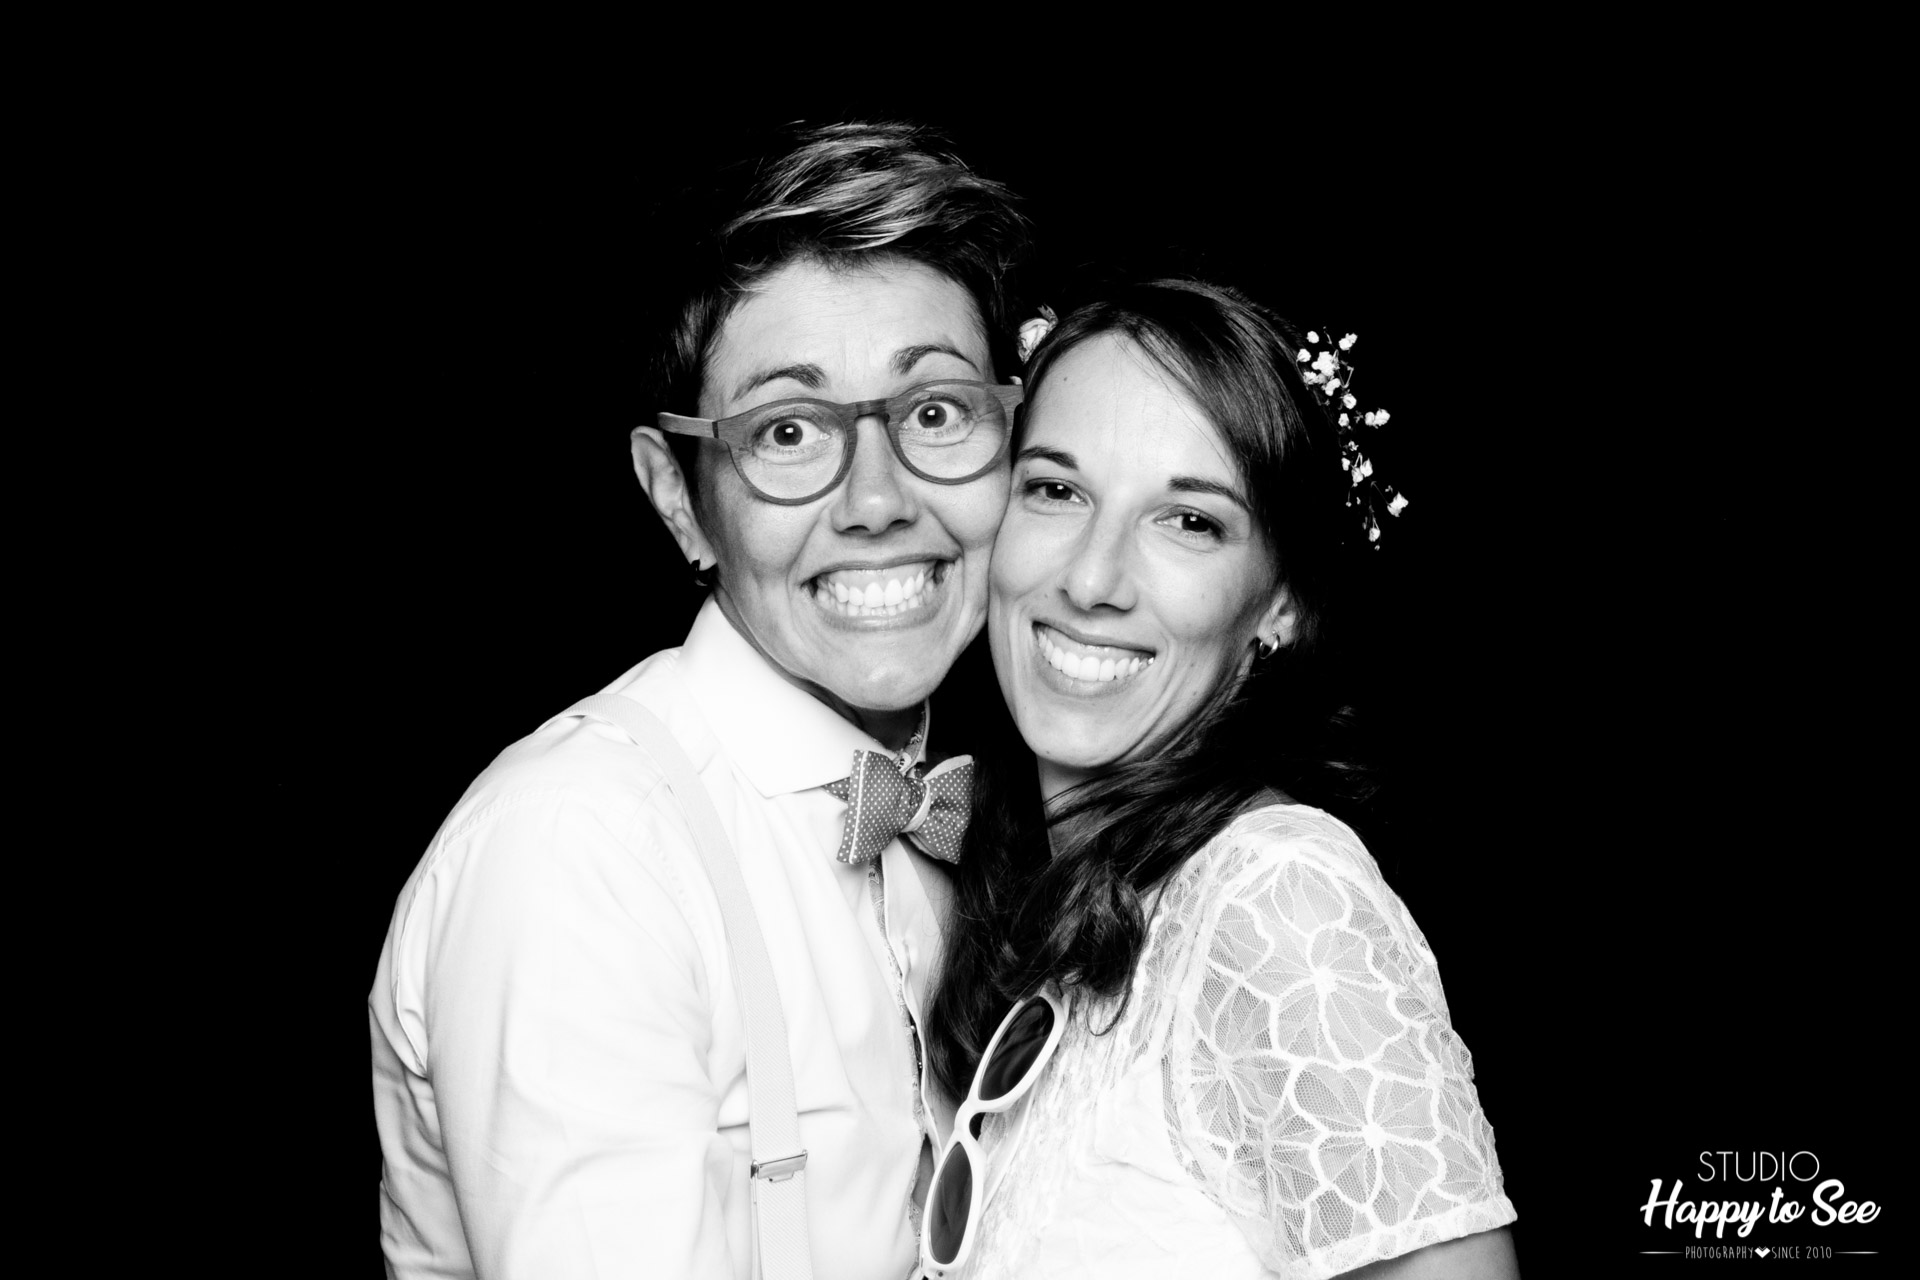 Photobooth Mariage Lesbien